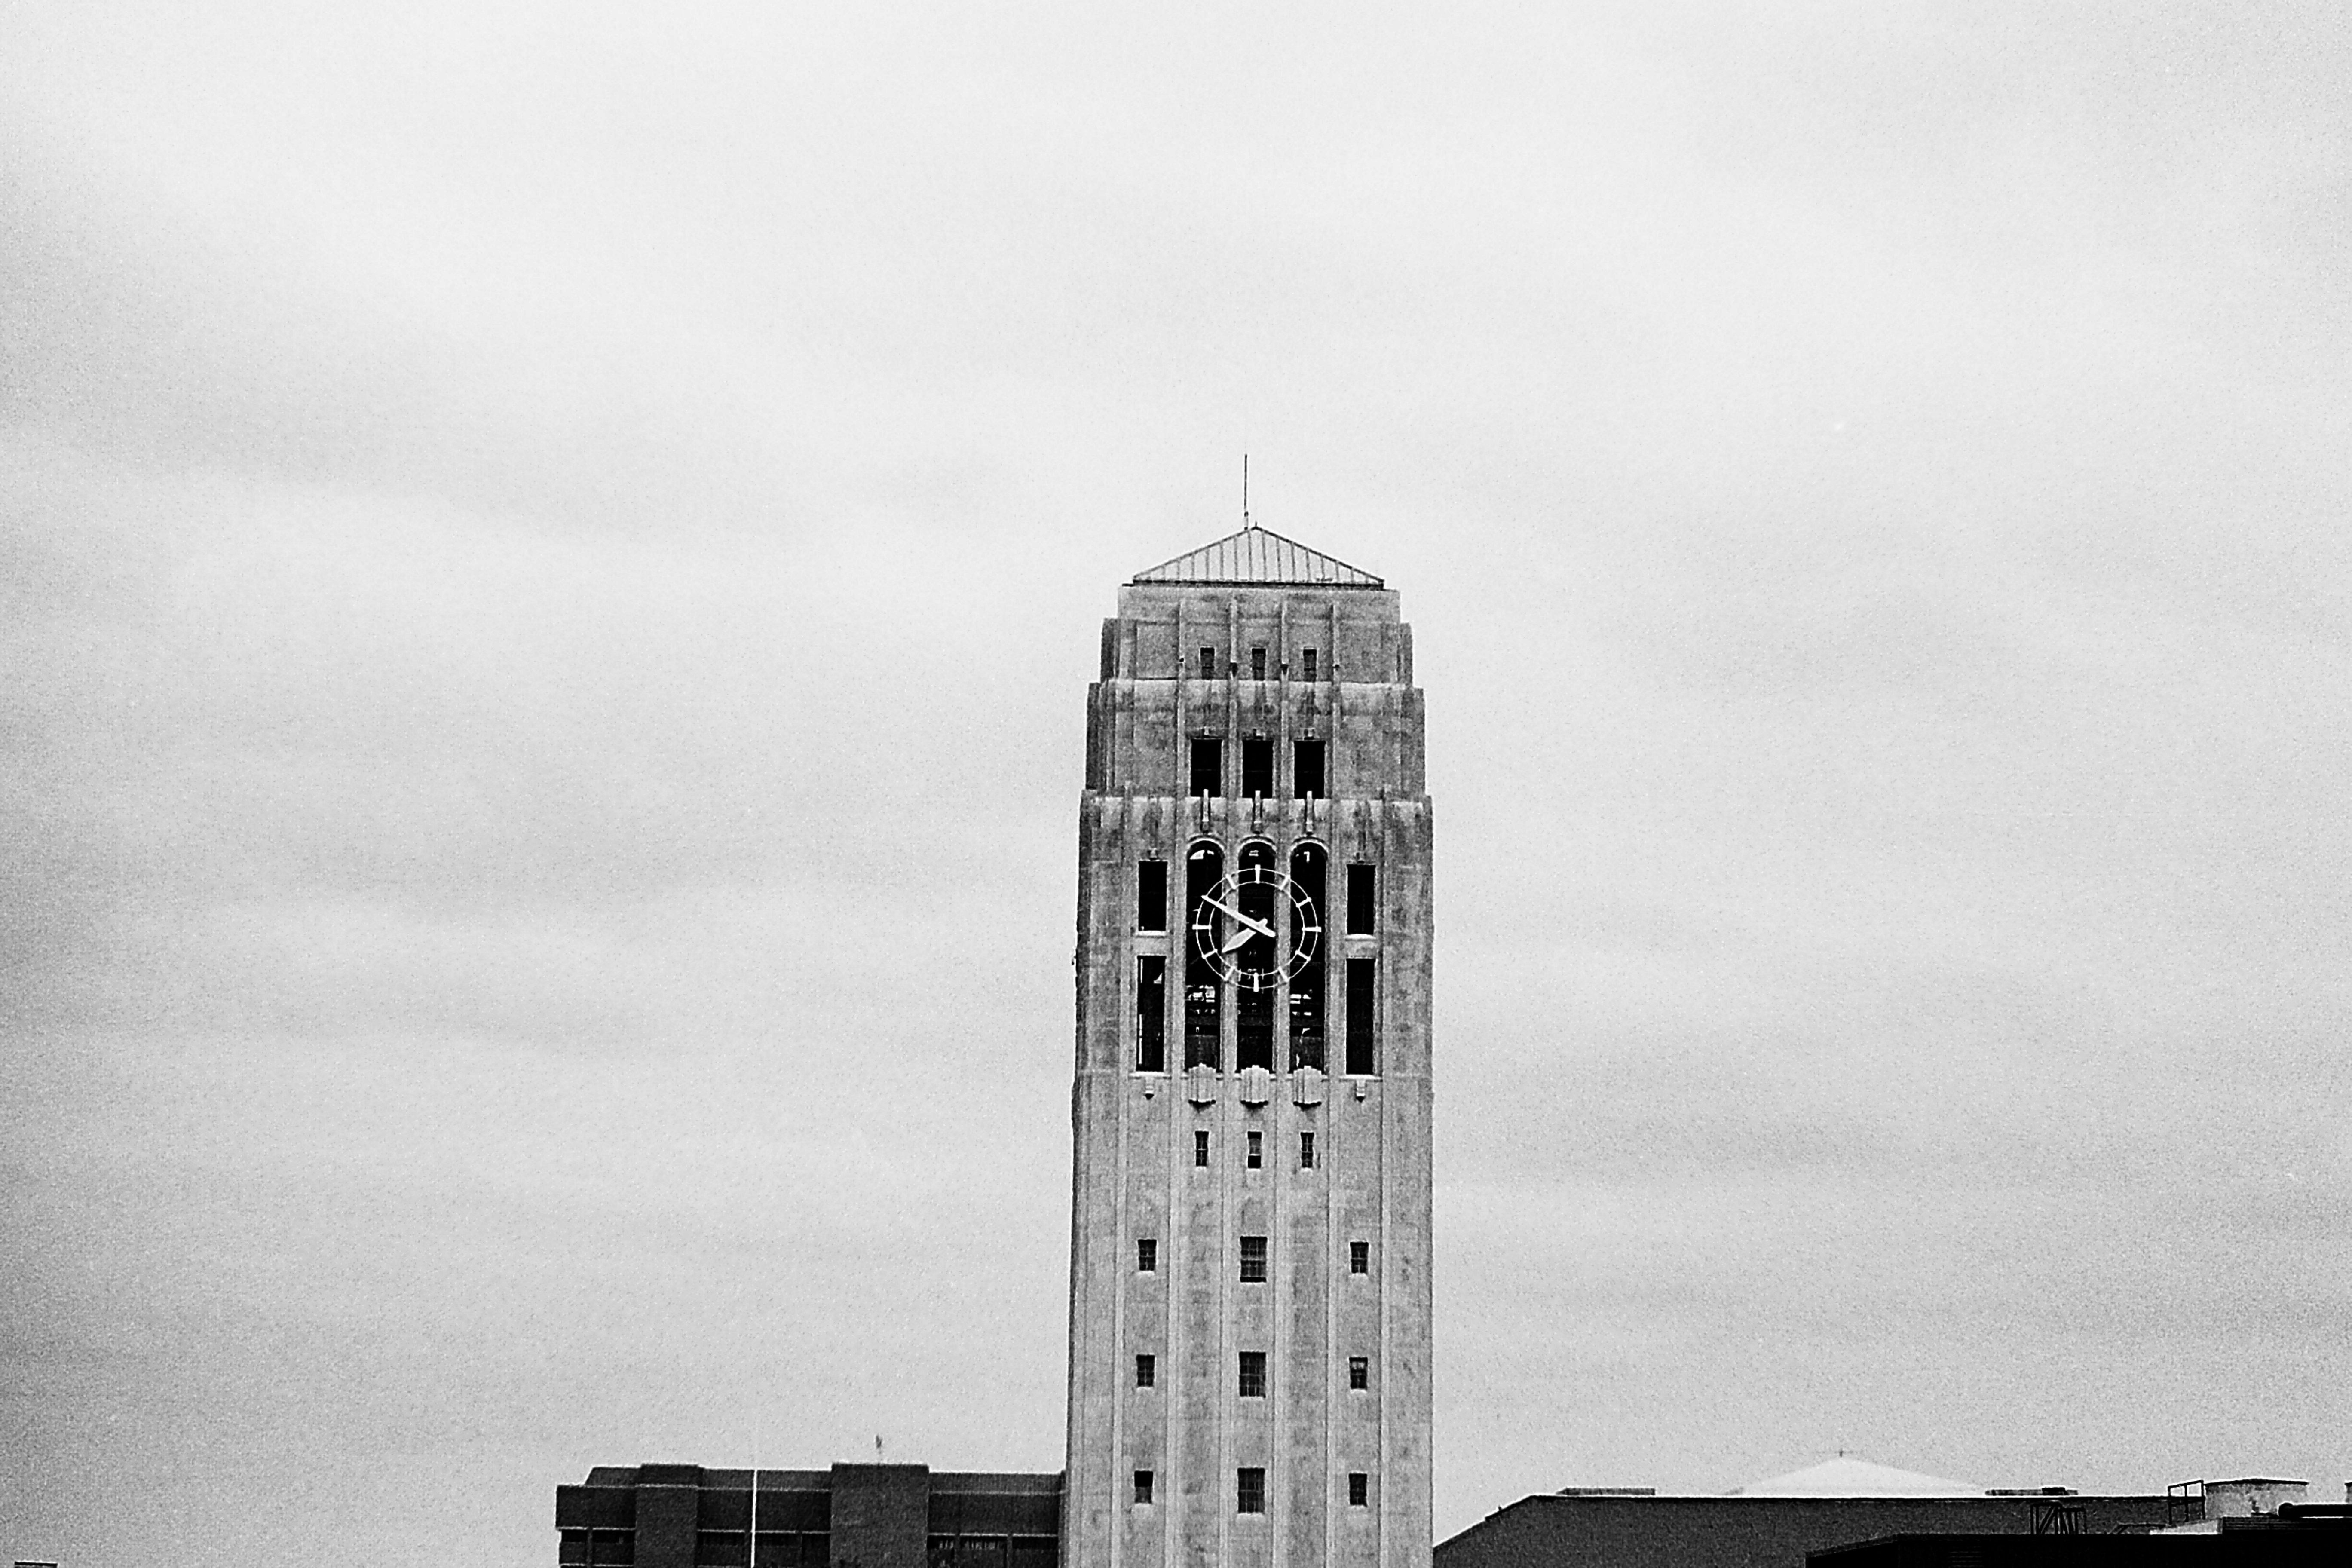 Burton Tower, 1979 image